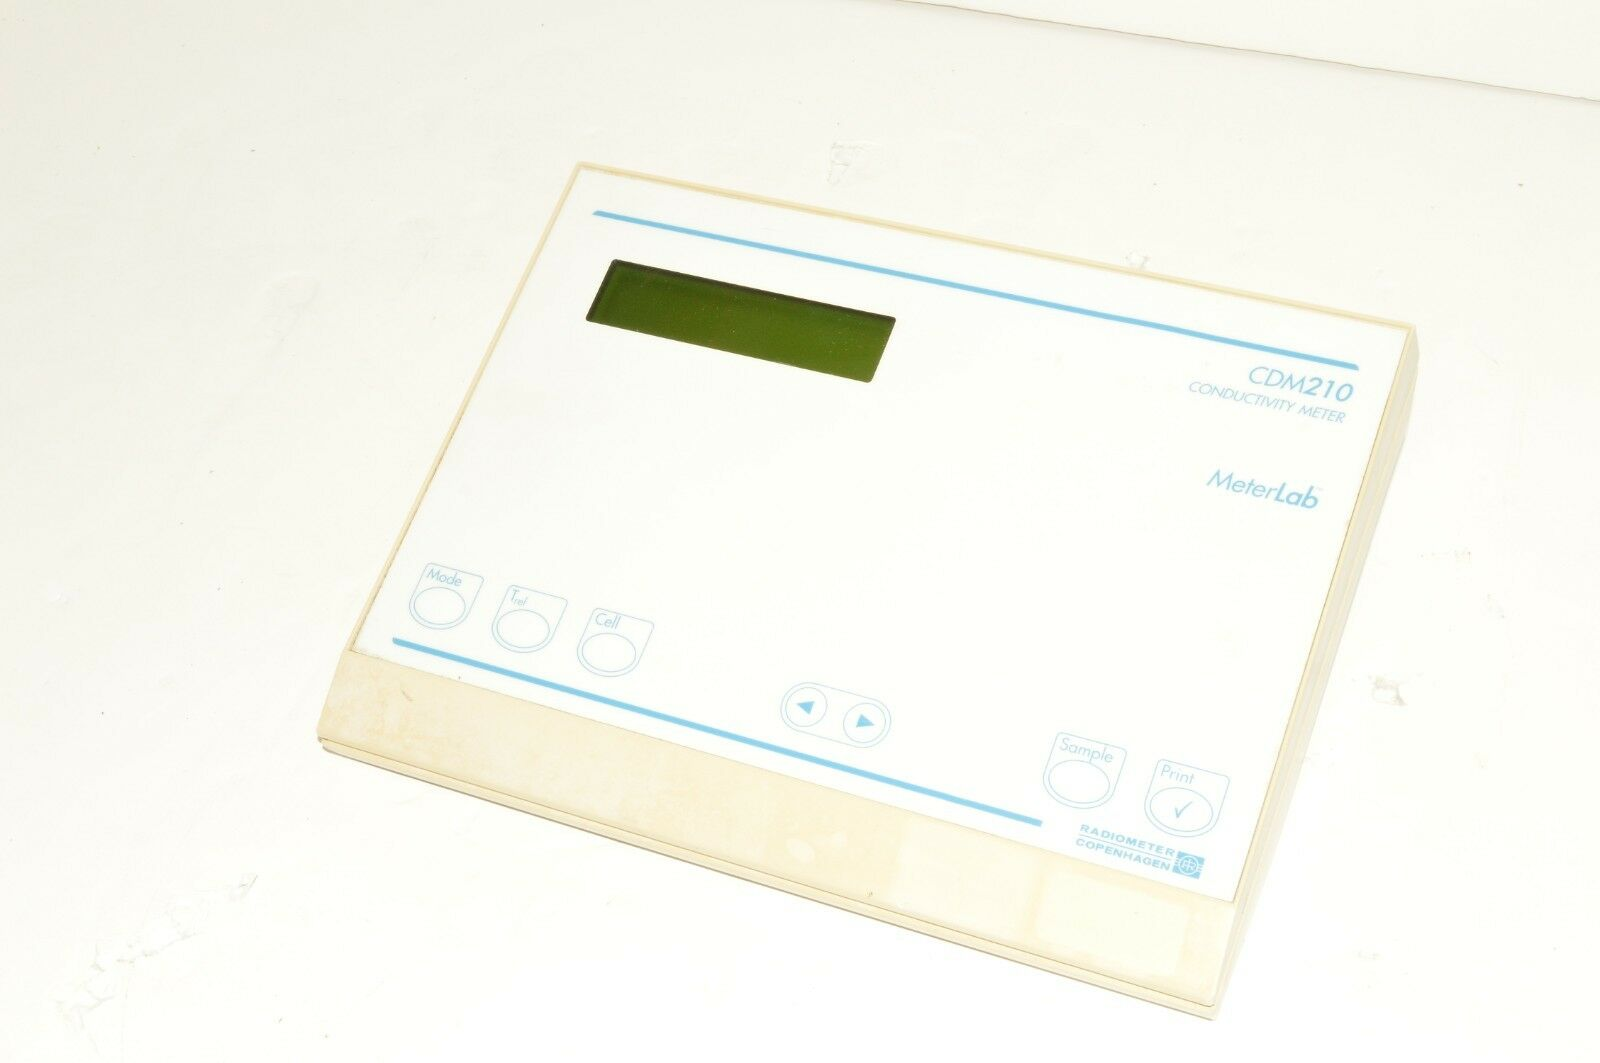 Radiometer Cdm210 Conductivity Meter W Power Supply Ebay Conductive Pen Gadgets Other Electronics Norton Secured Powered By Verisign